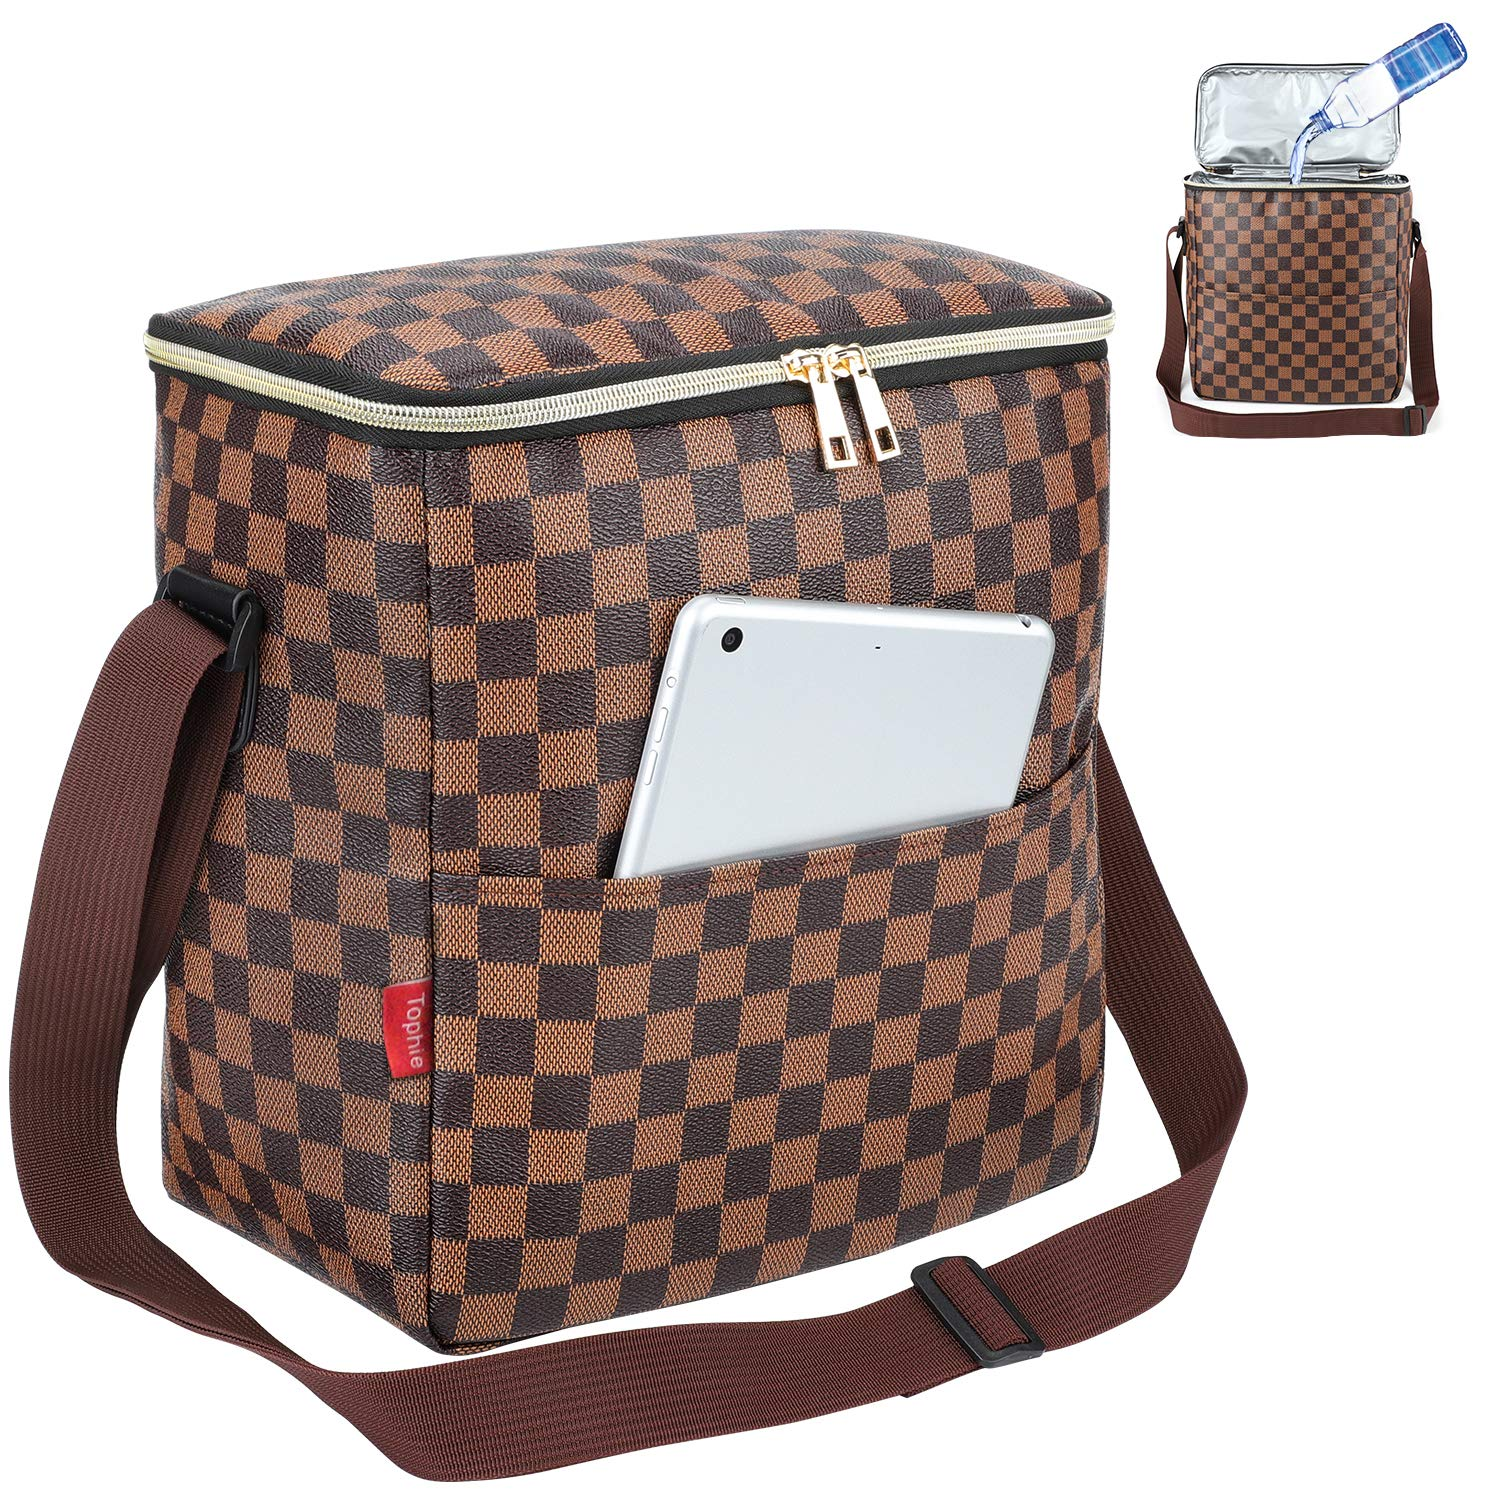 Lunch Bags For Women and Man,Insulated Lunch Box Cooler Bag with Adjustable Shoulder Strap, Water-resistant Thermal PU Soft leather Lunch Shoulder Bag for Work/Picnic/Beach/Hiking(Checked Pattern) by Tophie